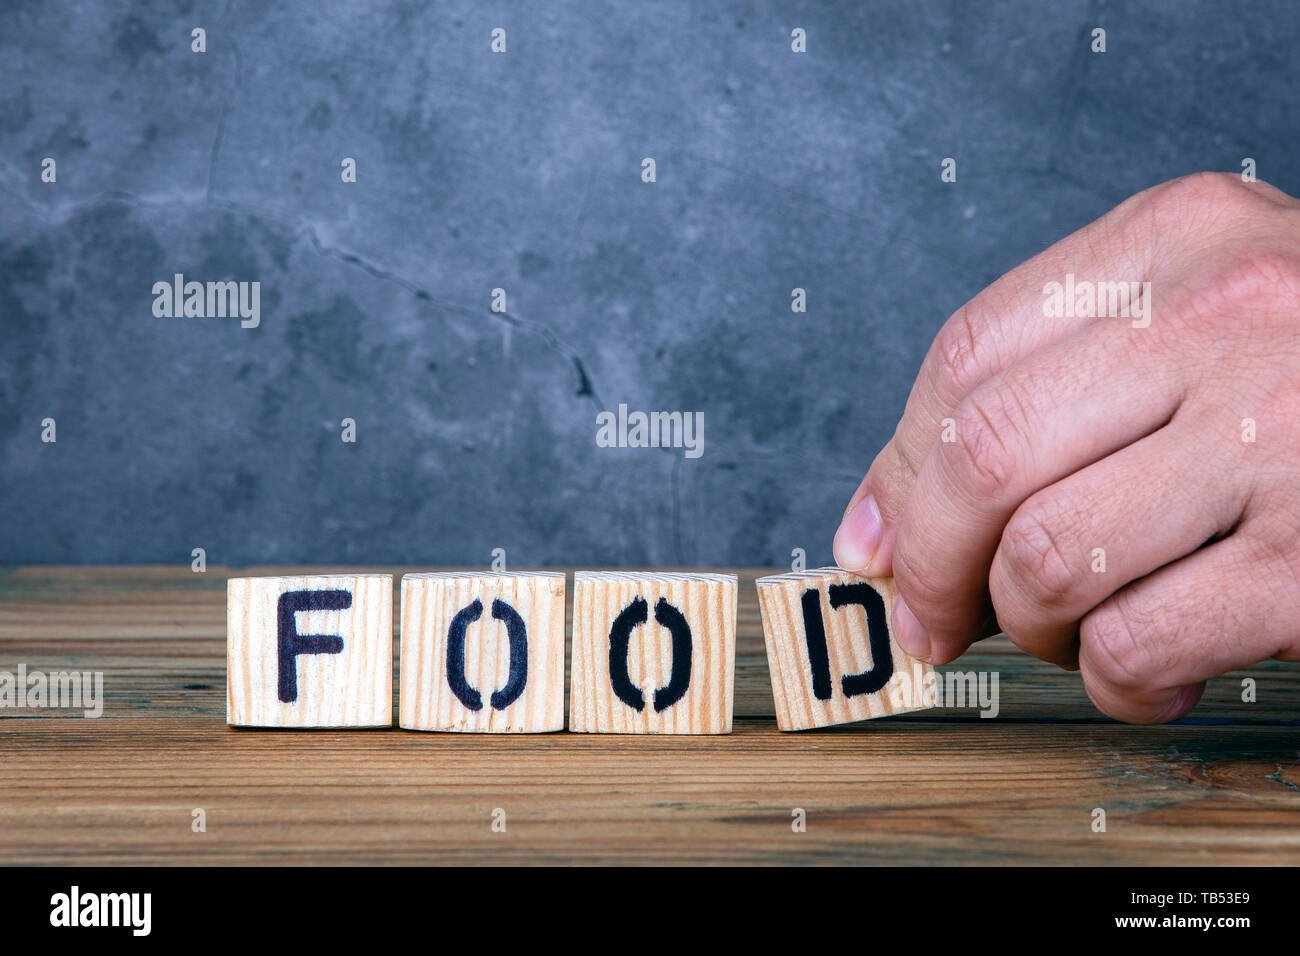 Food - word from wooden letters - Stock Image